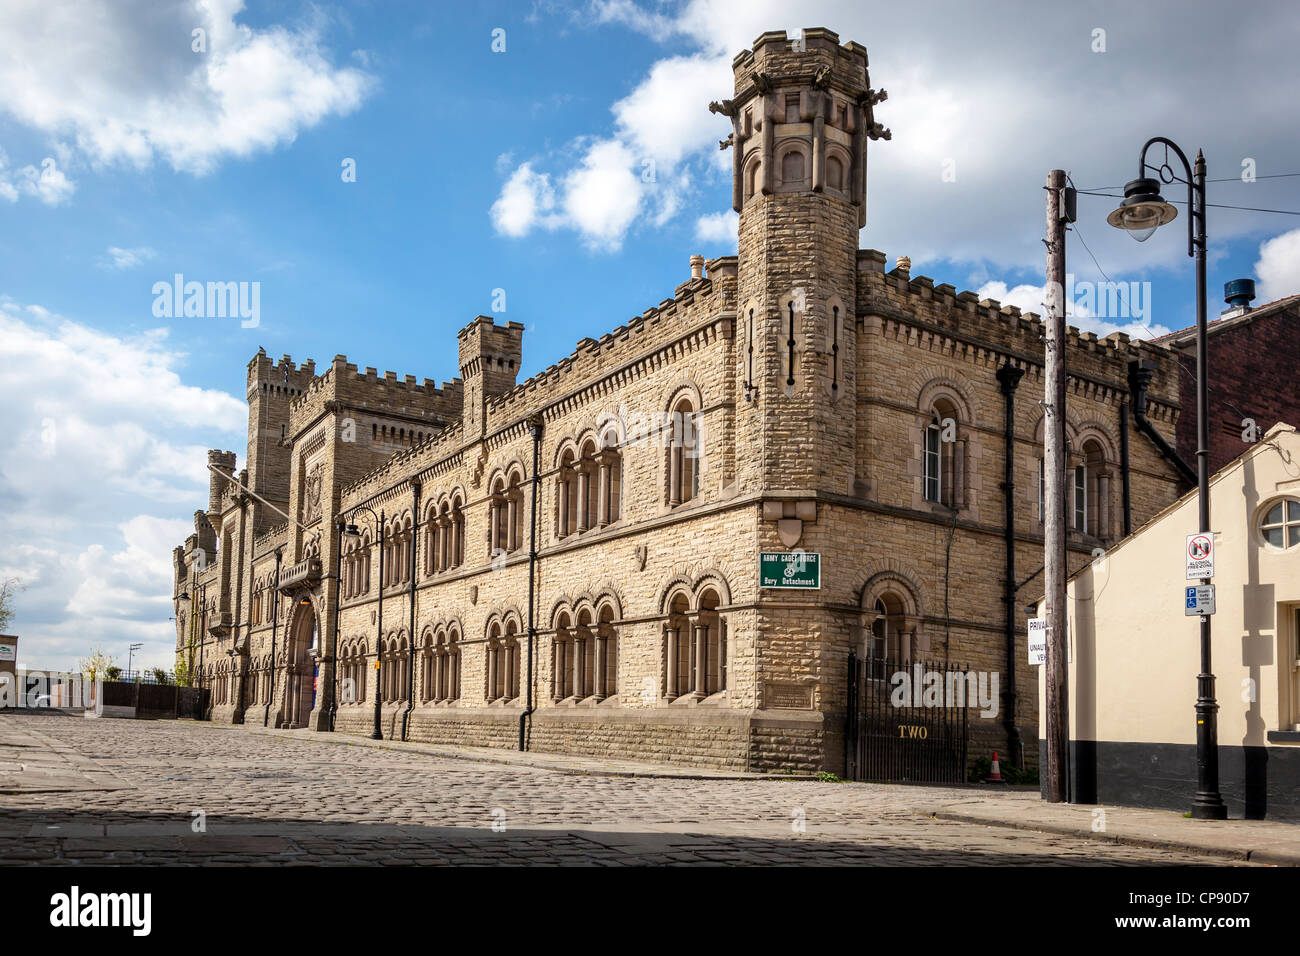 The Castle barracks and Armoury in Bury Lancashire. - Stock Image